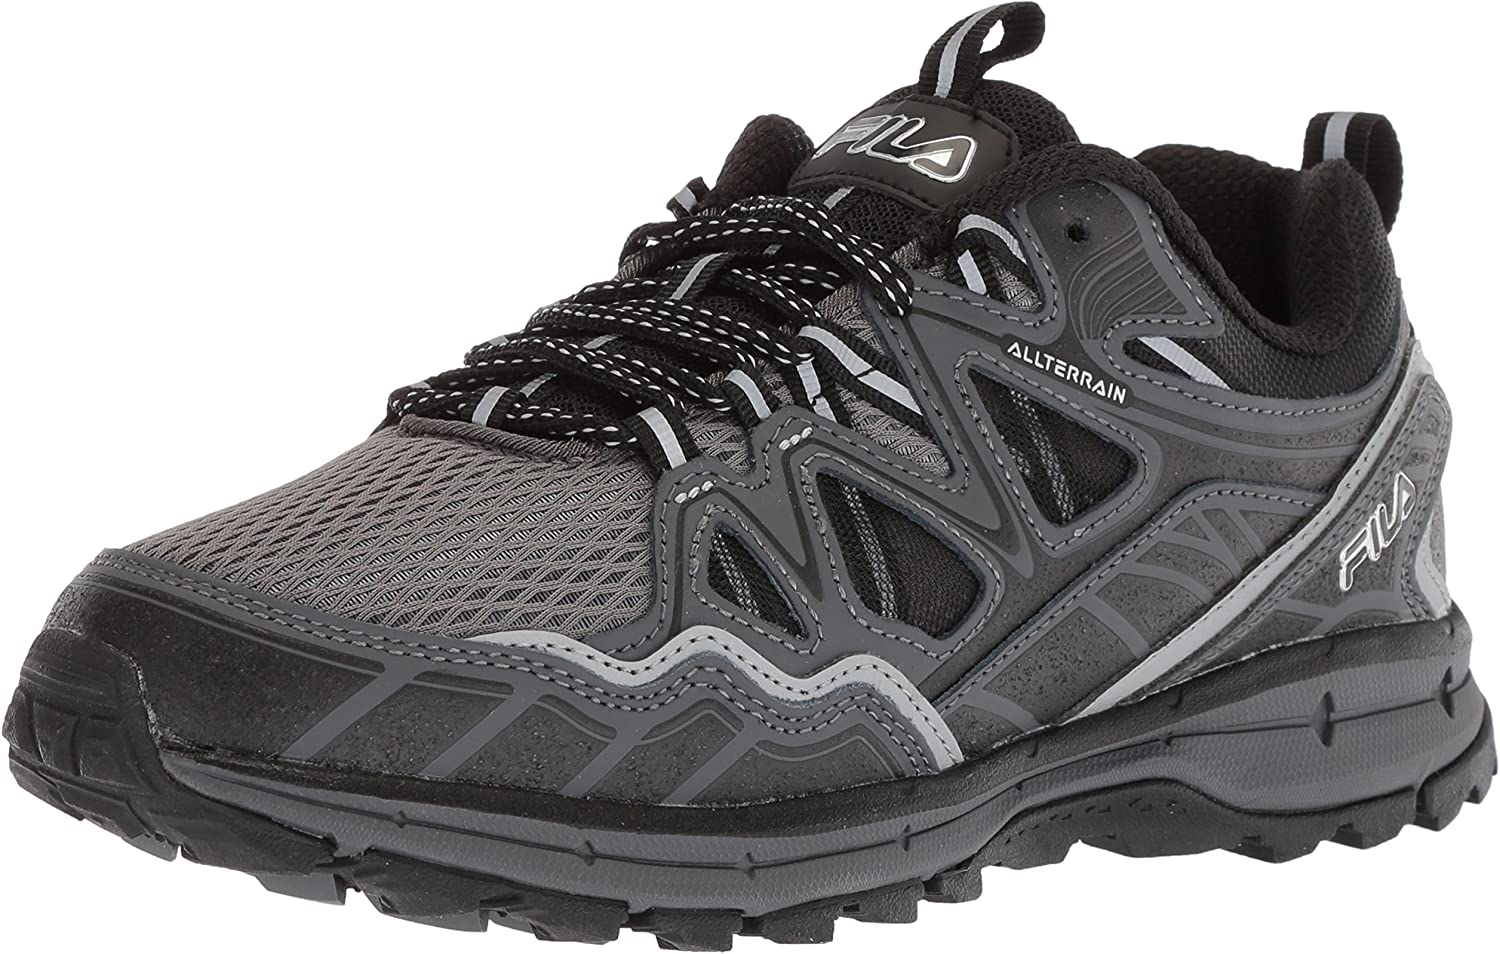 Fila Men's Memory TKO Tr 5.0 Wide Trail Running shoes